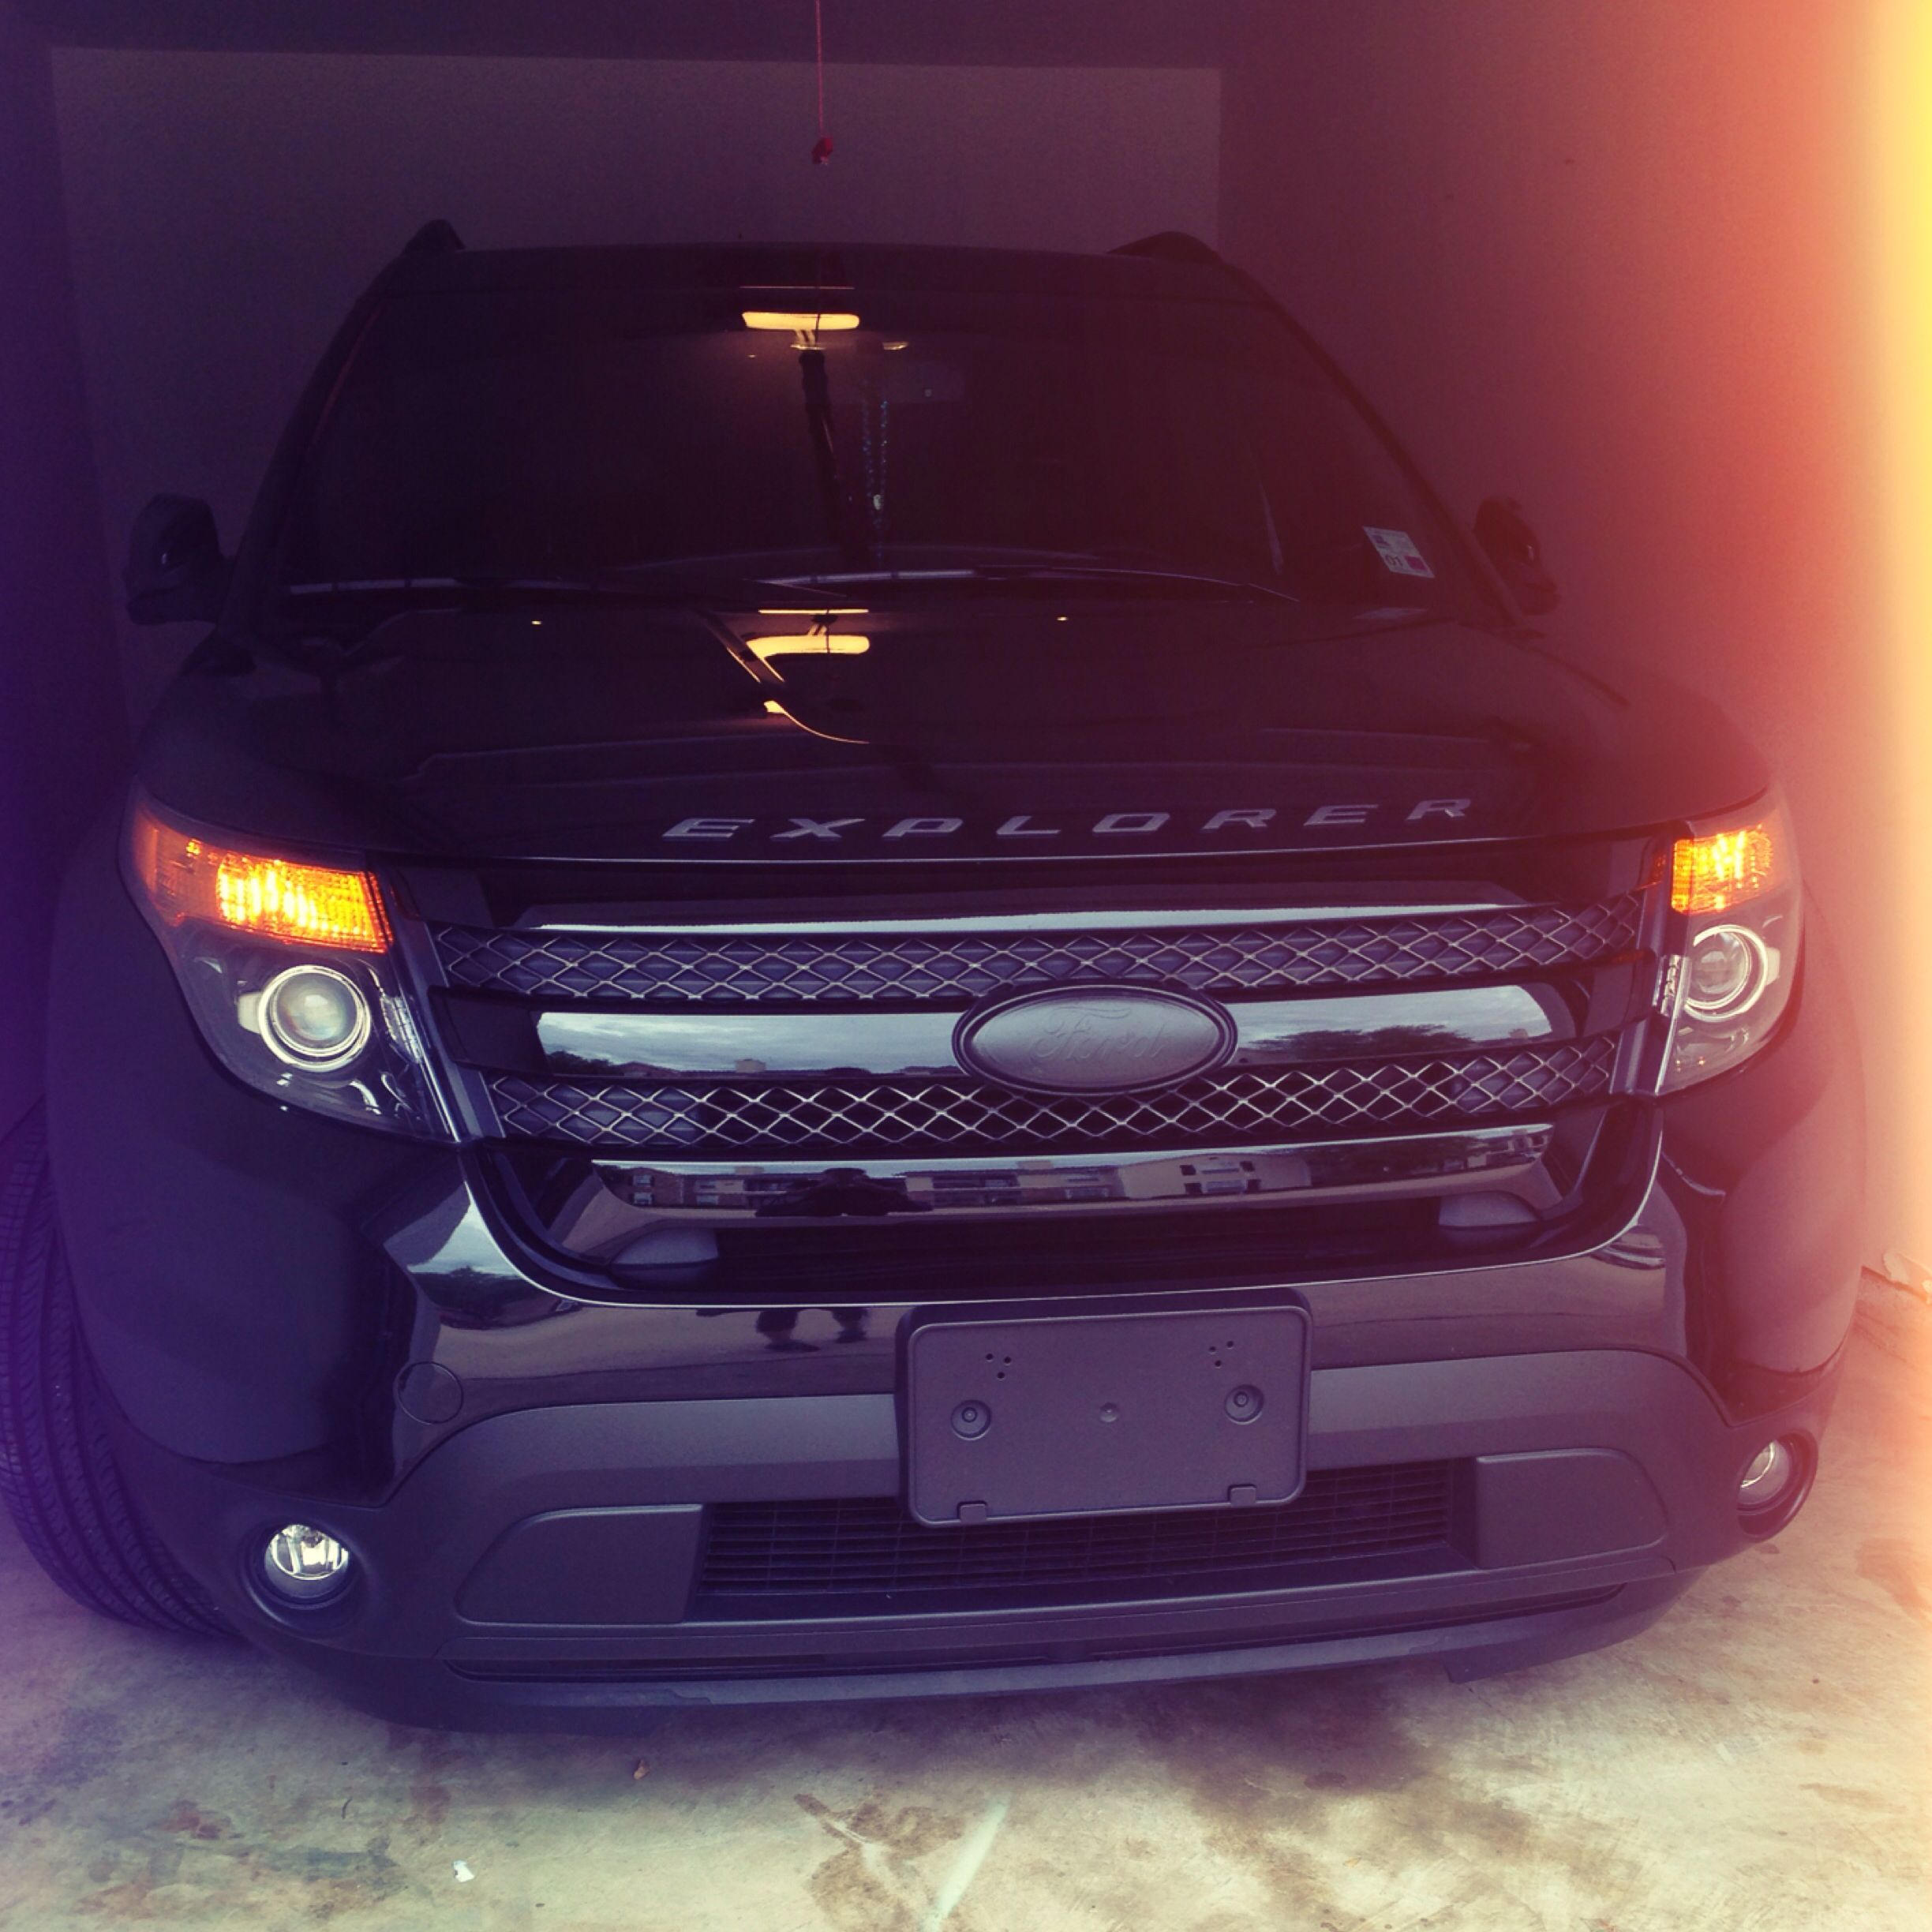 all black ford 2014 explorer sport drive in style pinterest ford ford explorer and cars. Black Bedroom Furniture Sets. Home Design Ideas